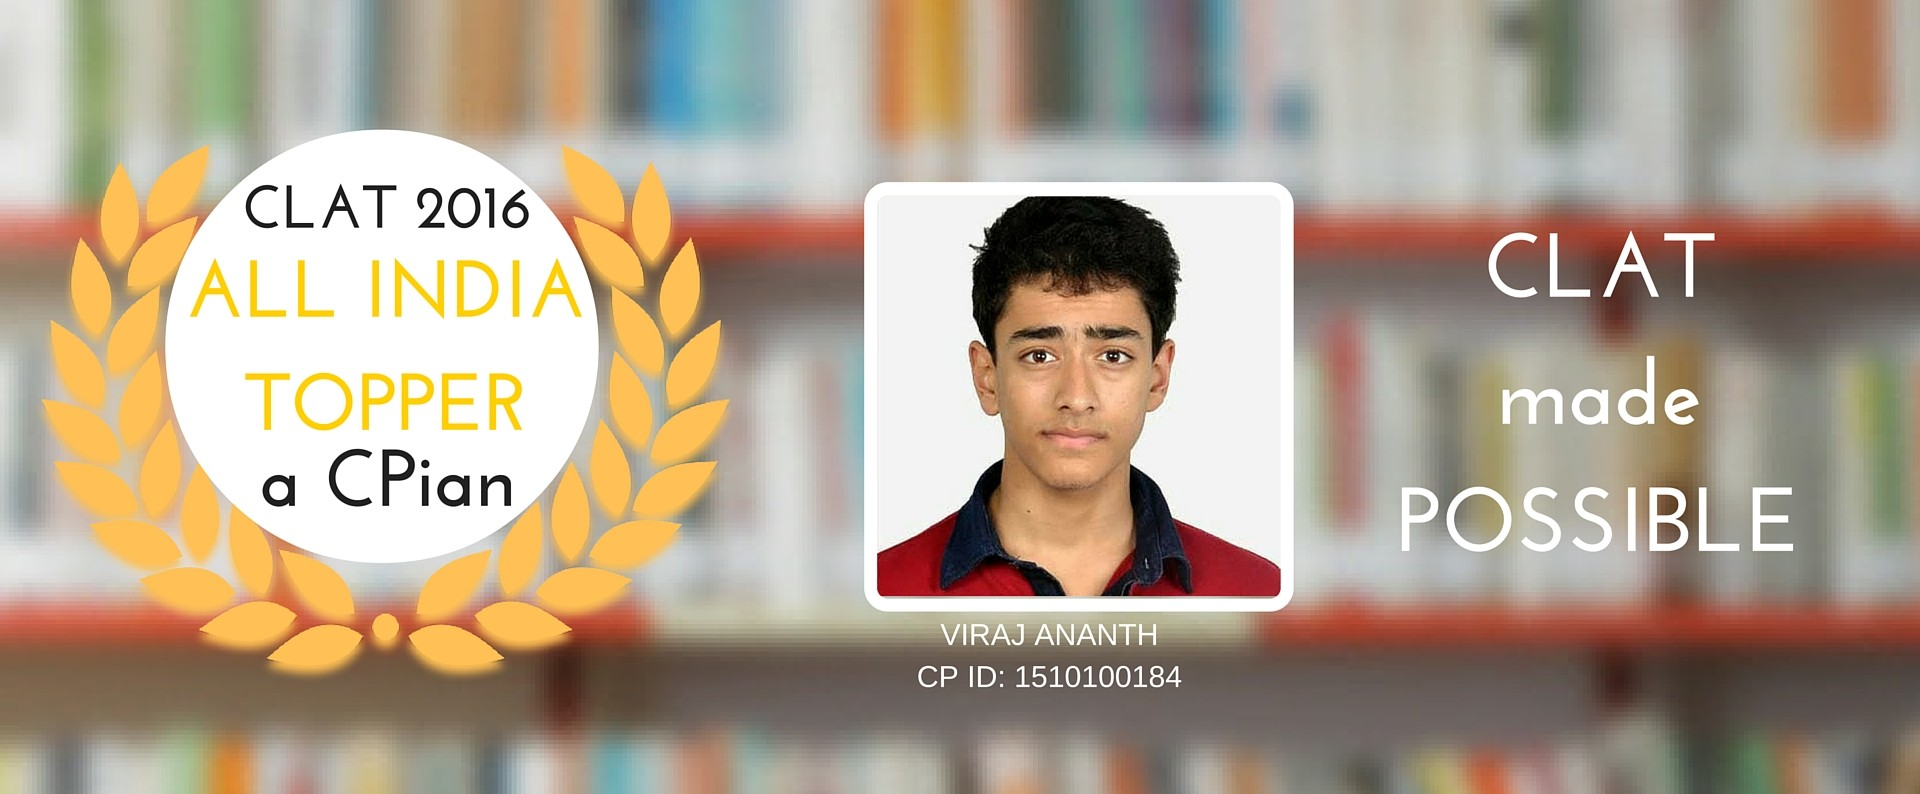 CLAT ALL INDIA TOPPER VIRAJ ANANTH STUDENT OF CLAT POSSIBLE